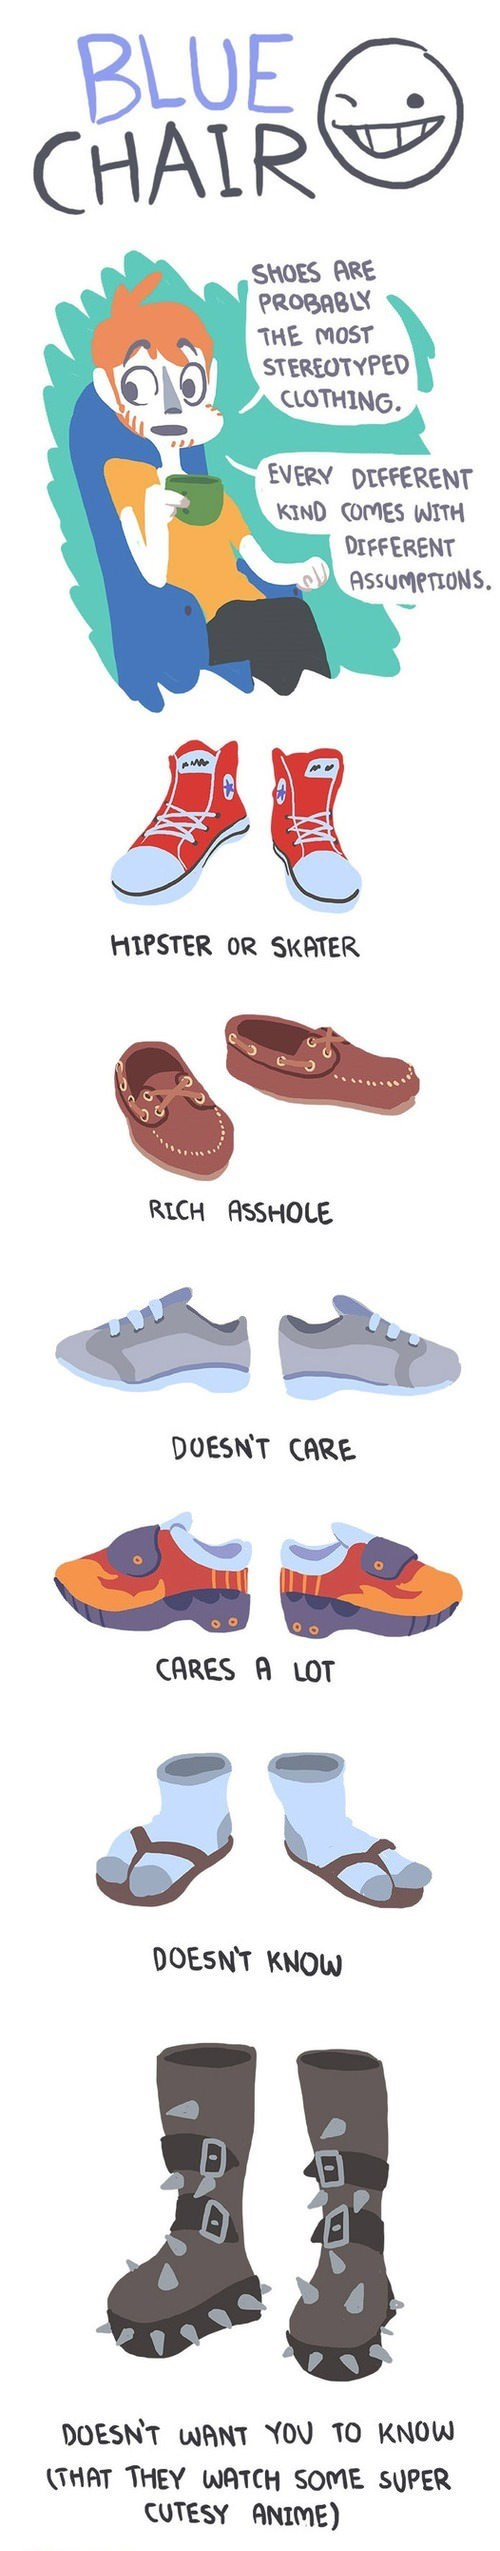 funny-web-comics-what-do-your-shoes-say-about-you